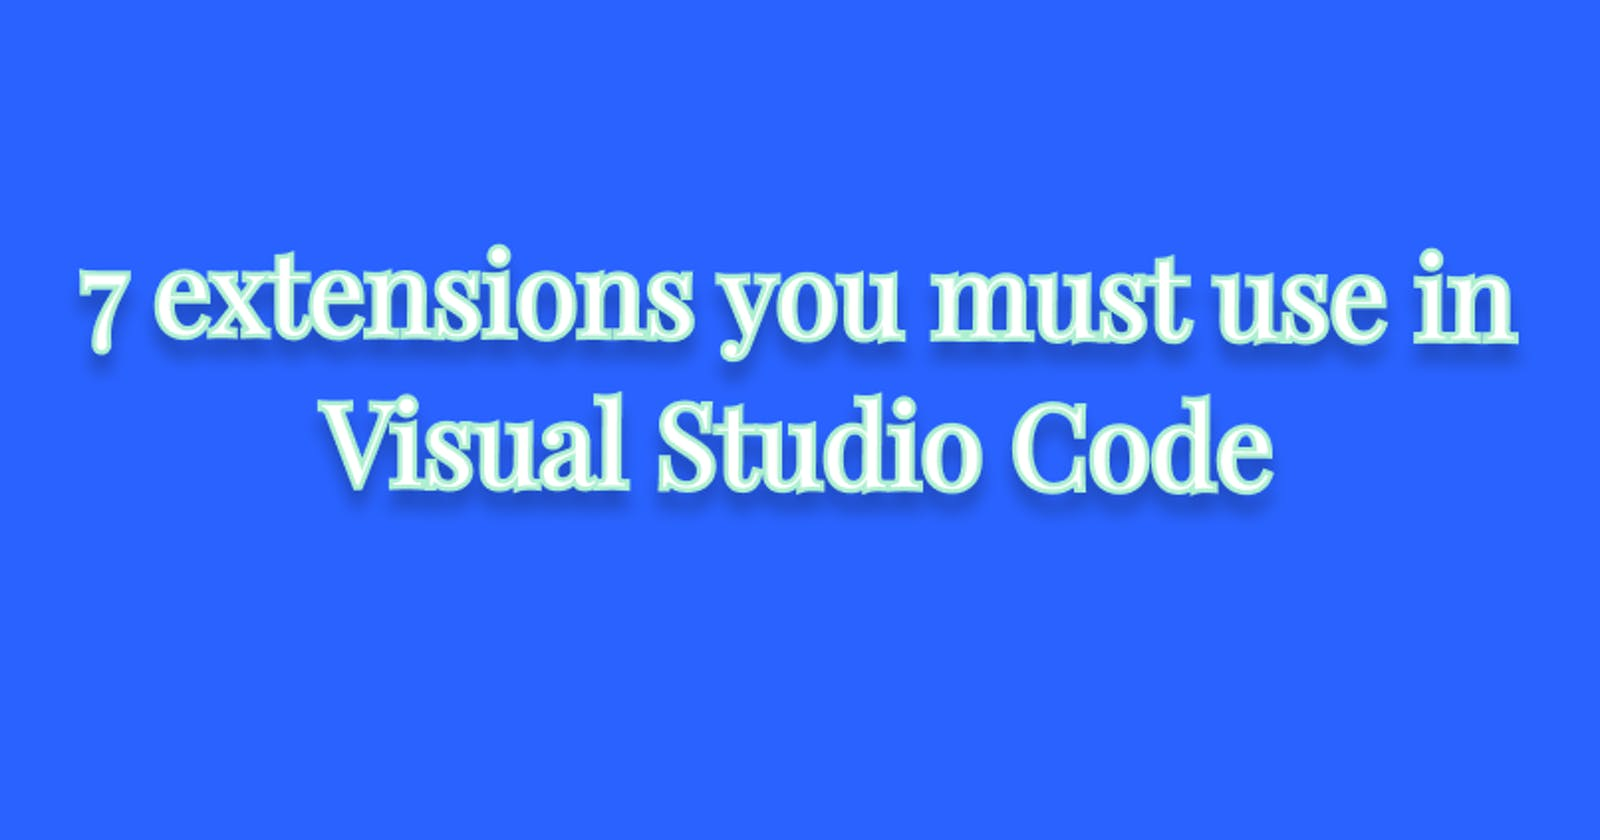 7 extensions you must use in Visual Studio Code